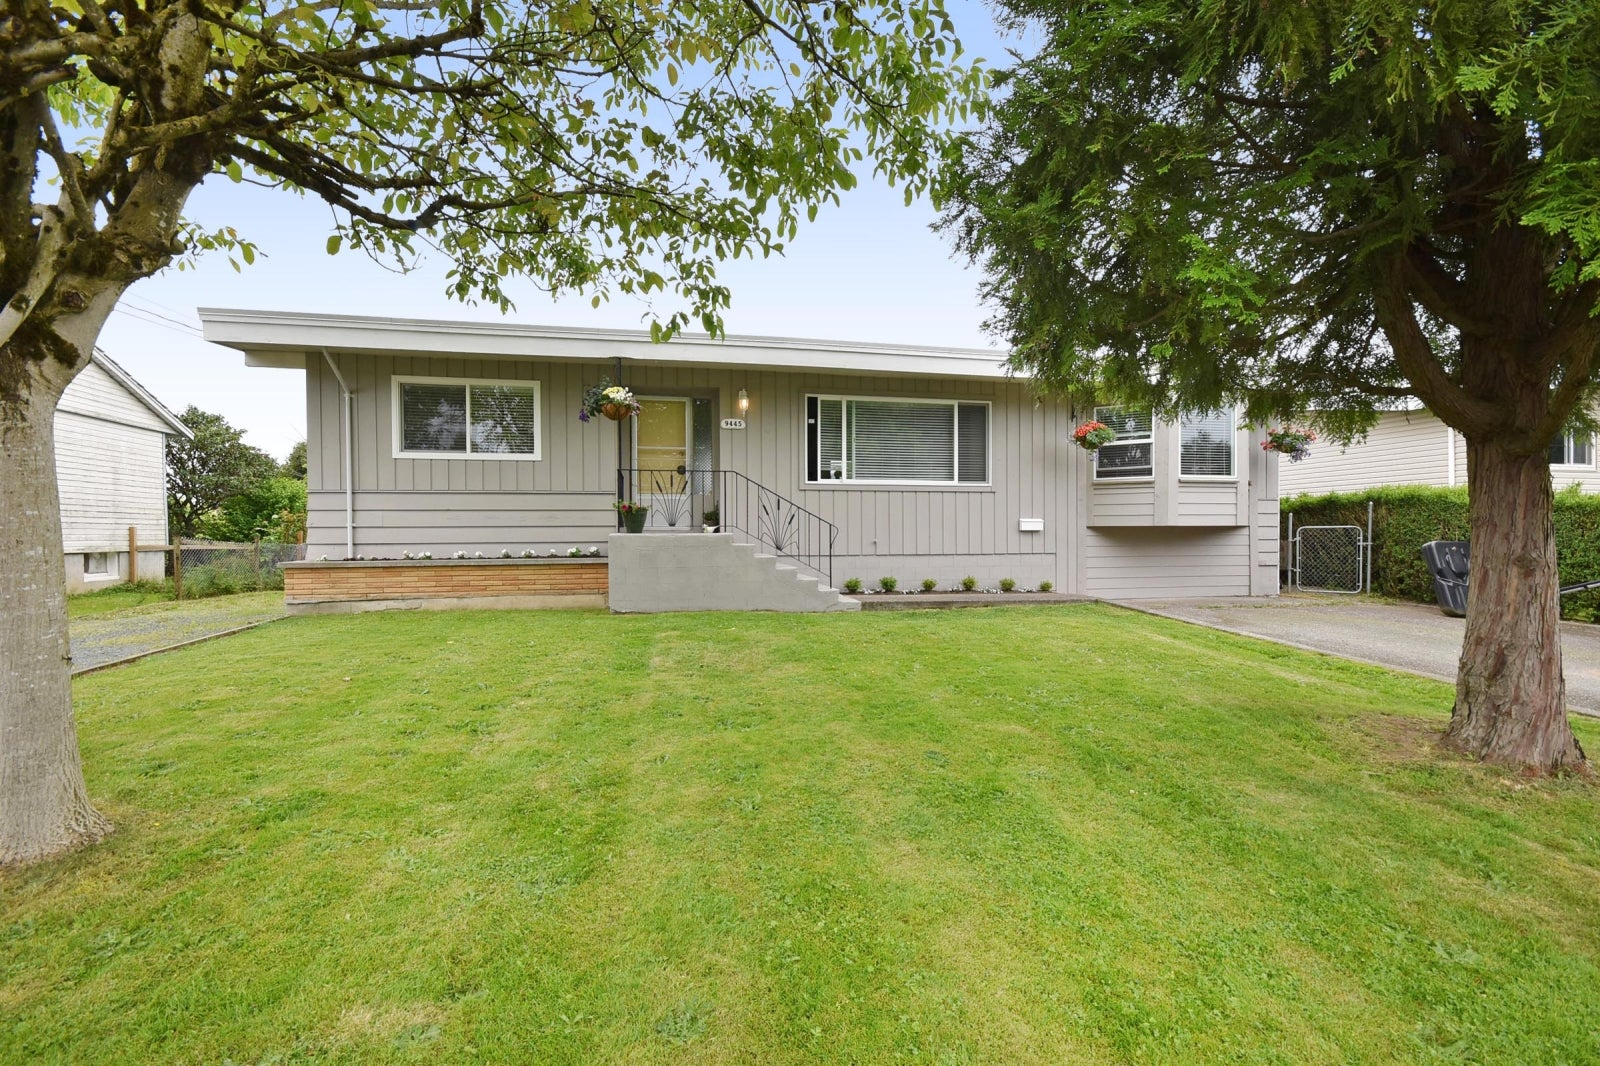 9445 CARLETON STREET - Chilliwack E Young-Yale House/Single Family for sale, 3 Bedrooms (R2180991) #1